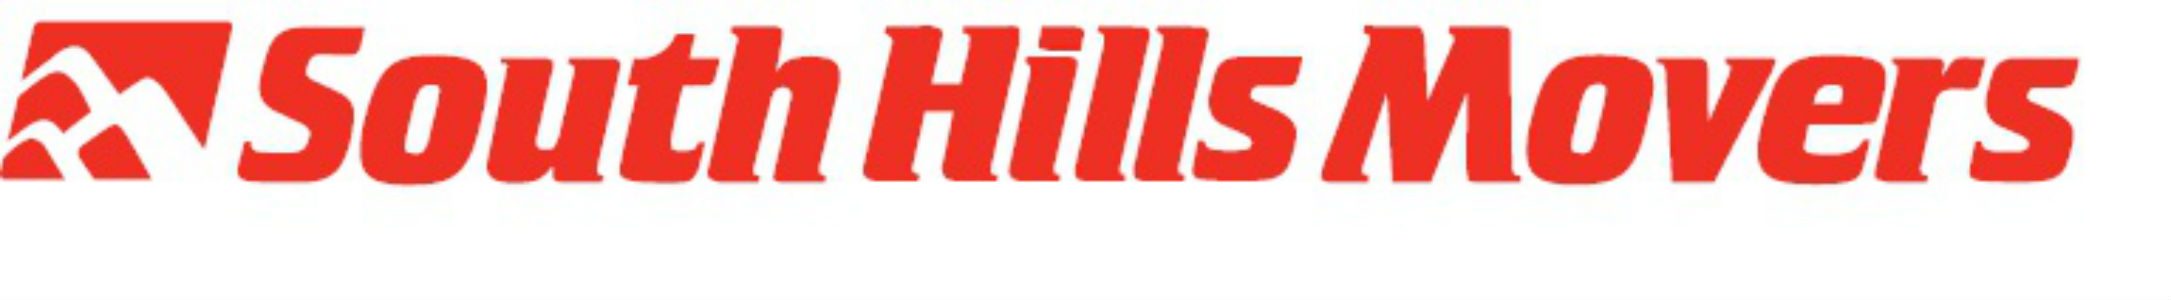 Company Logo South Hills Movers